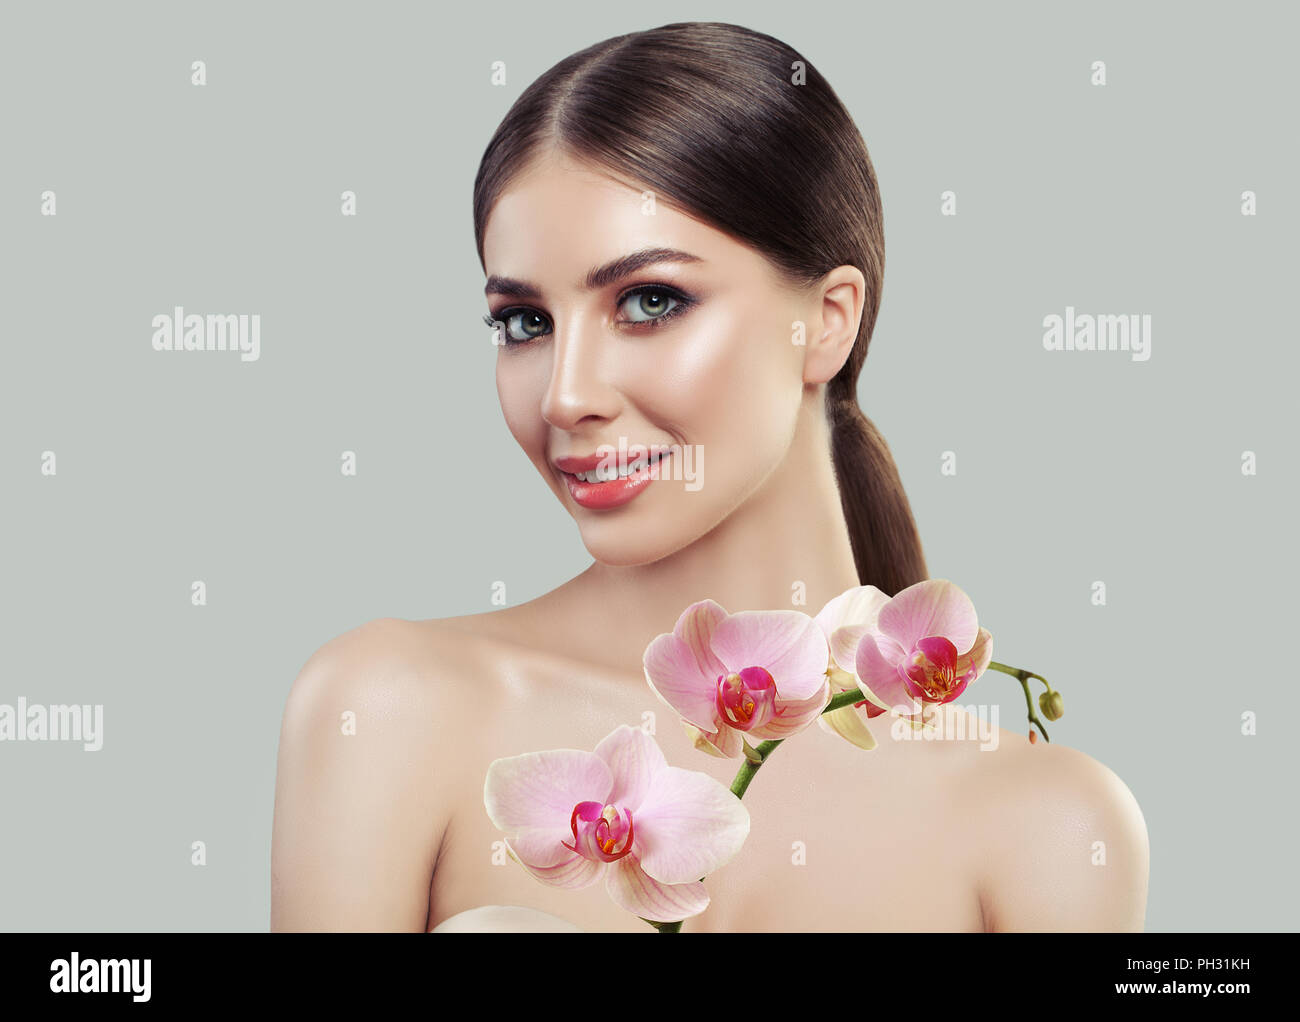 Cute smiling woman with healthy skin and pink orchid flowers. Facial treatment, cosmetology, beauty salon, skin care and spa concept - Stock Image